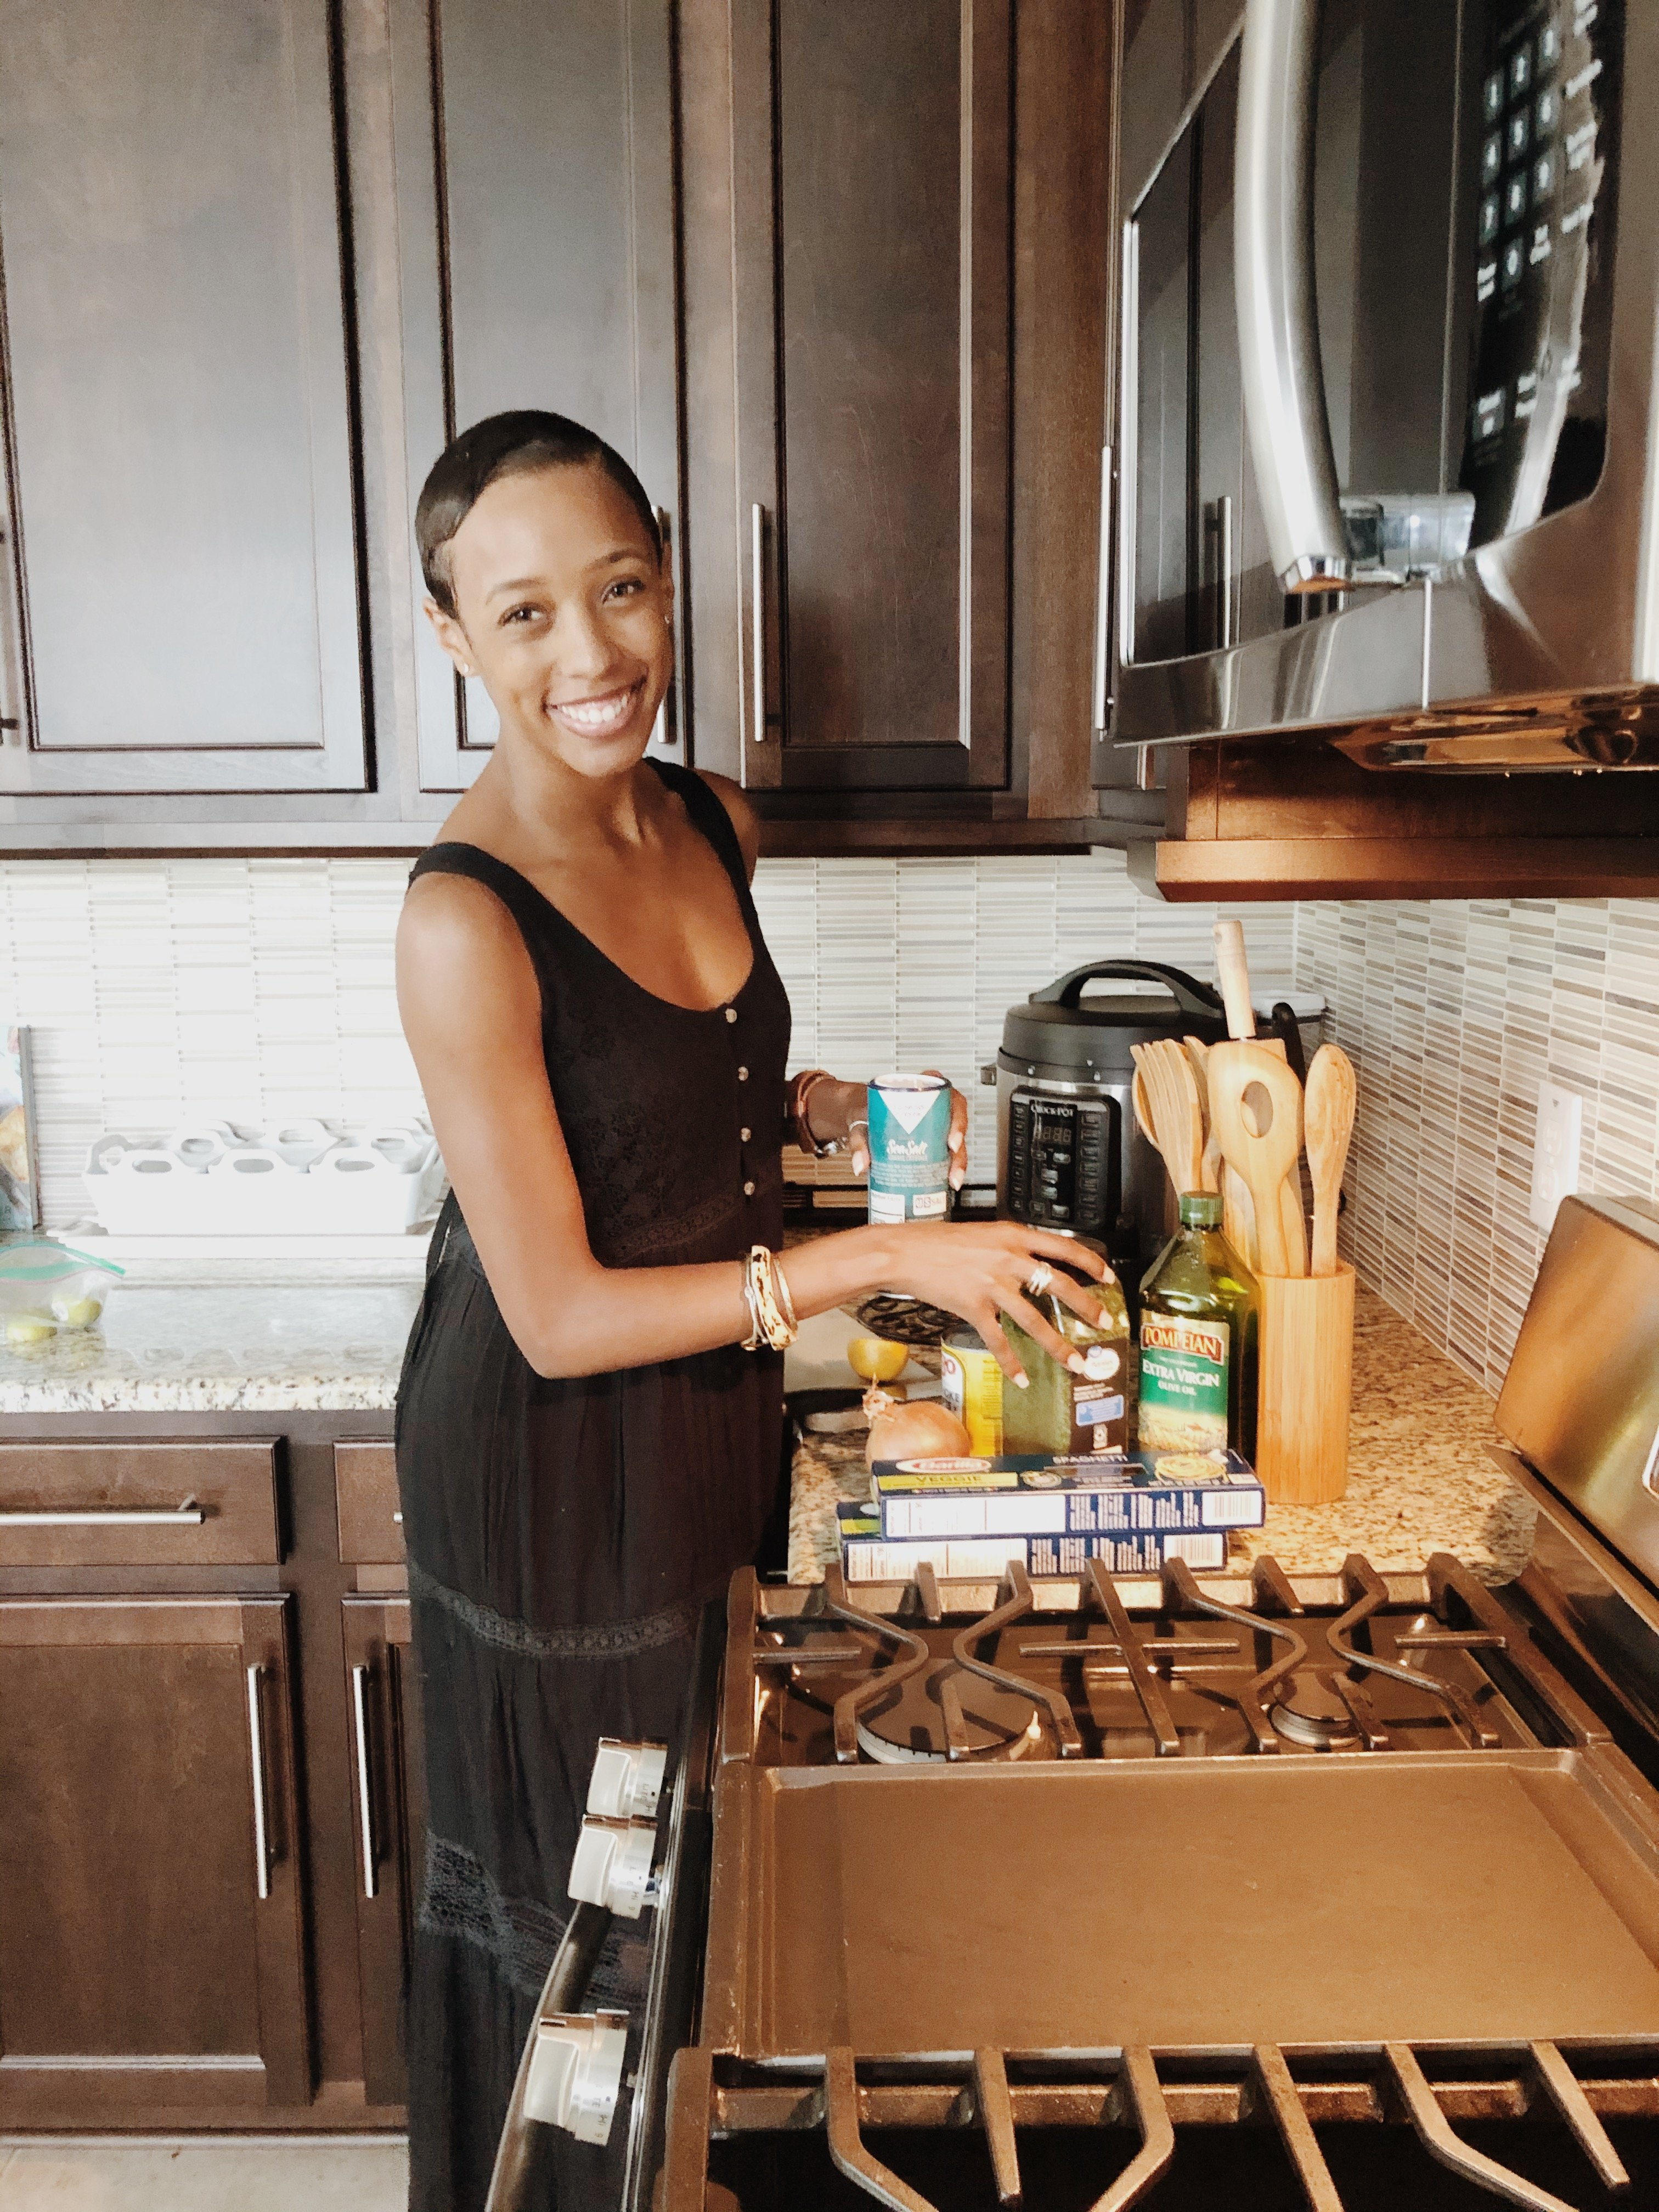 6 Top Dancers' Favorite Recipes to Inspire You in the Kitchen